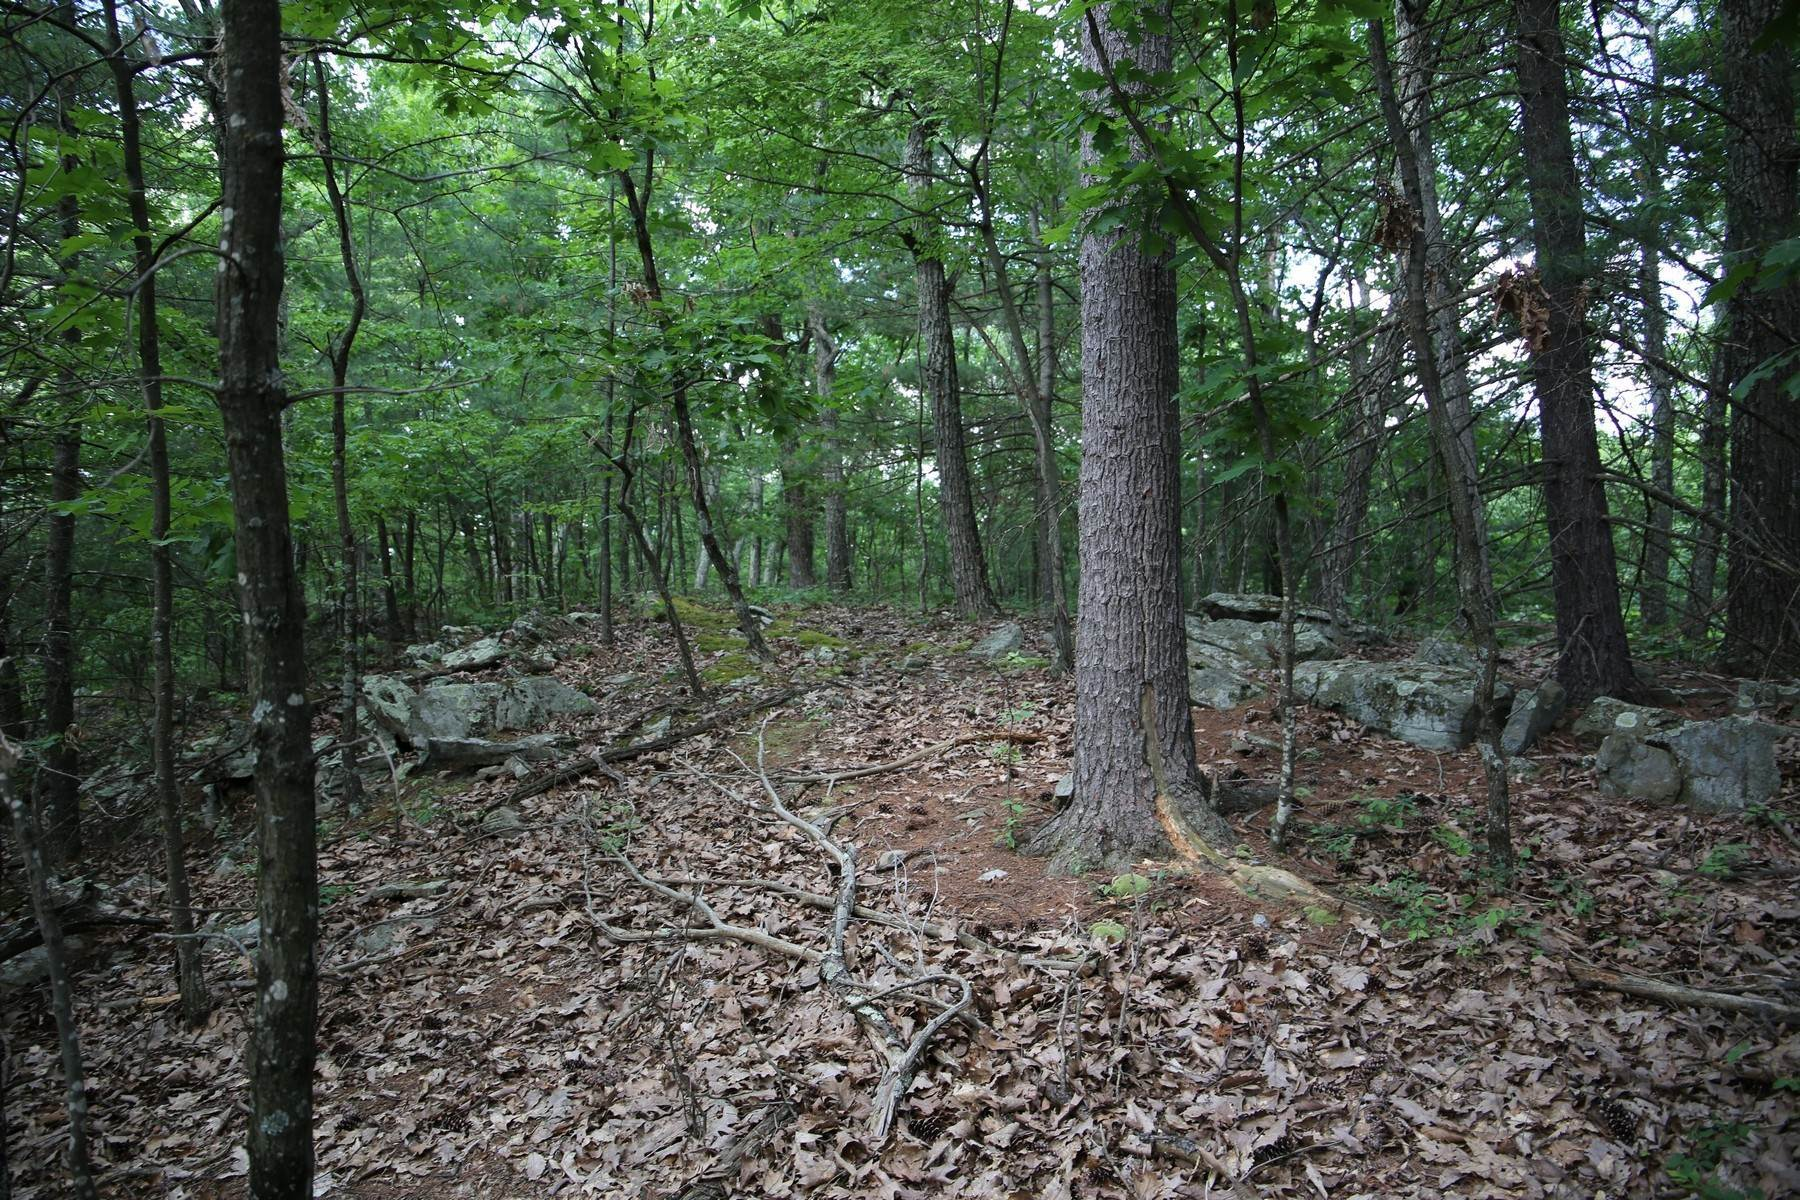 5. Land for Sale at Lily Lake Rd with access off Kisor Rd 70 Kisor (easement) Road, Lily Lake Rd Highland, New York 12528 United States